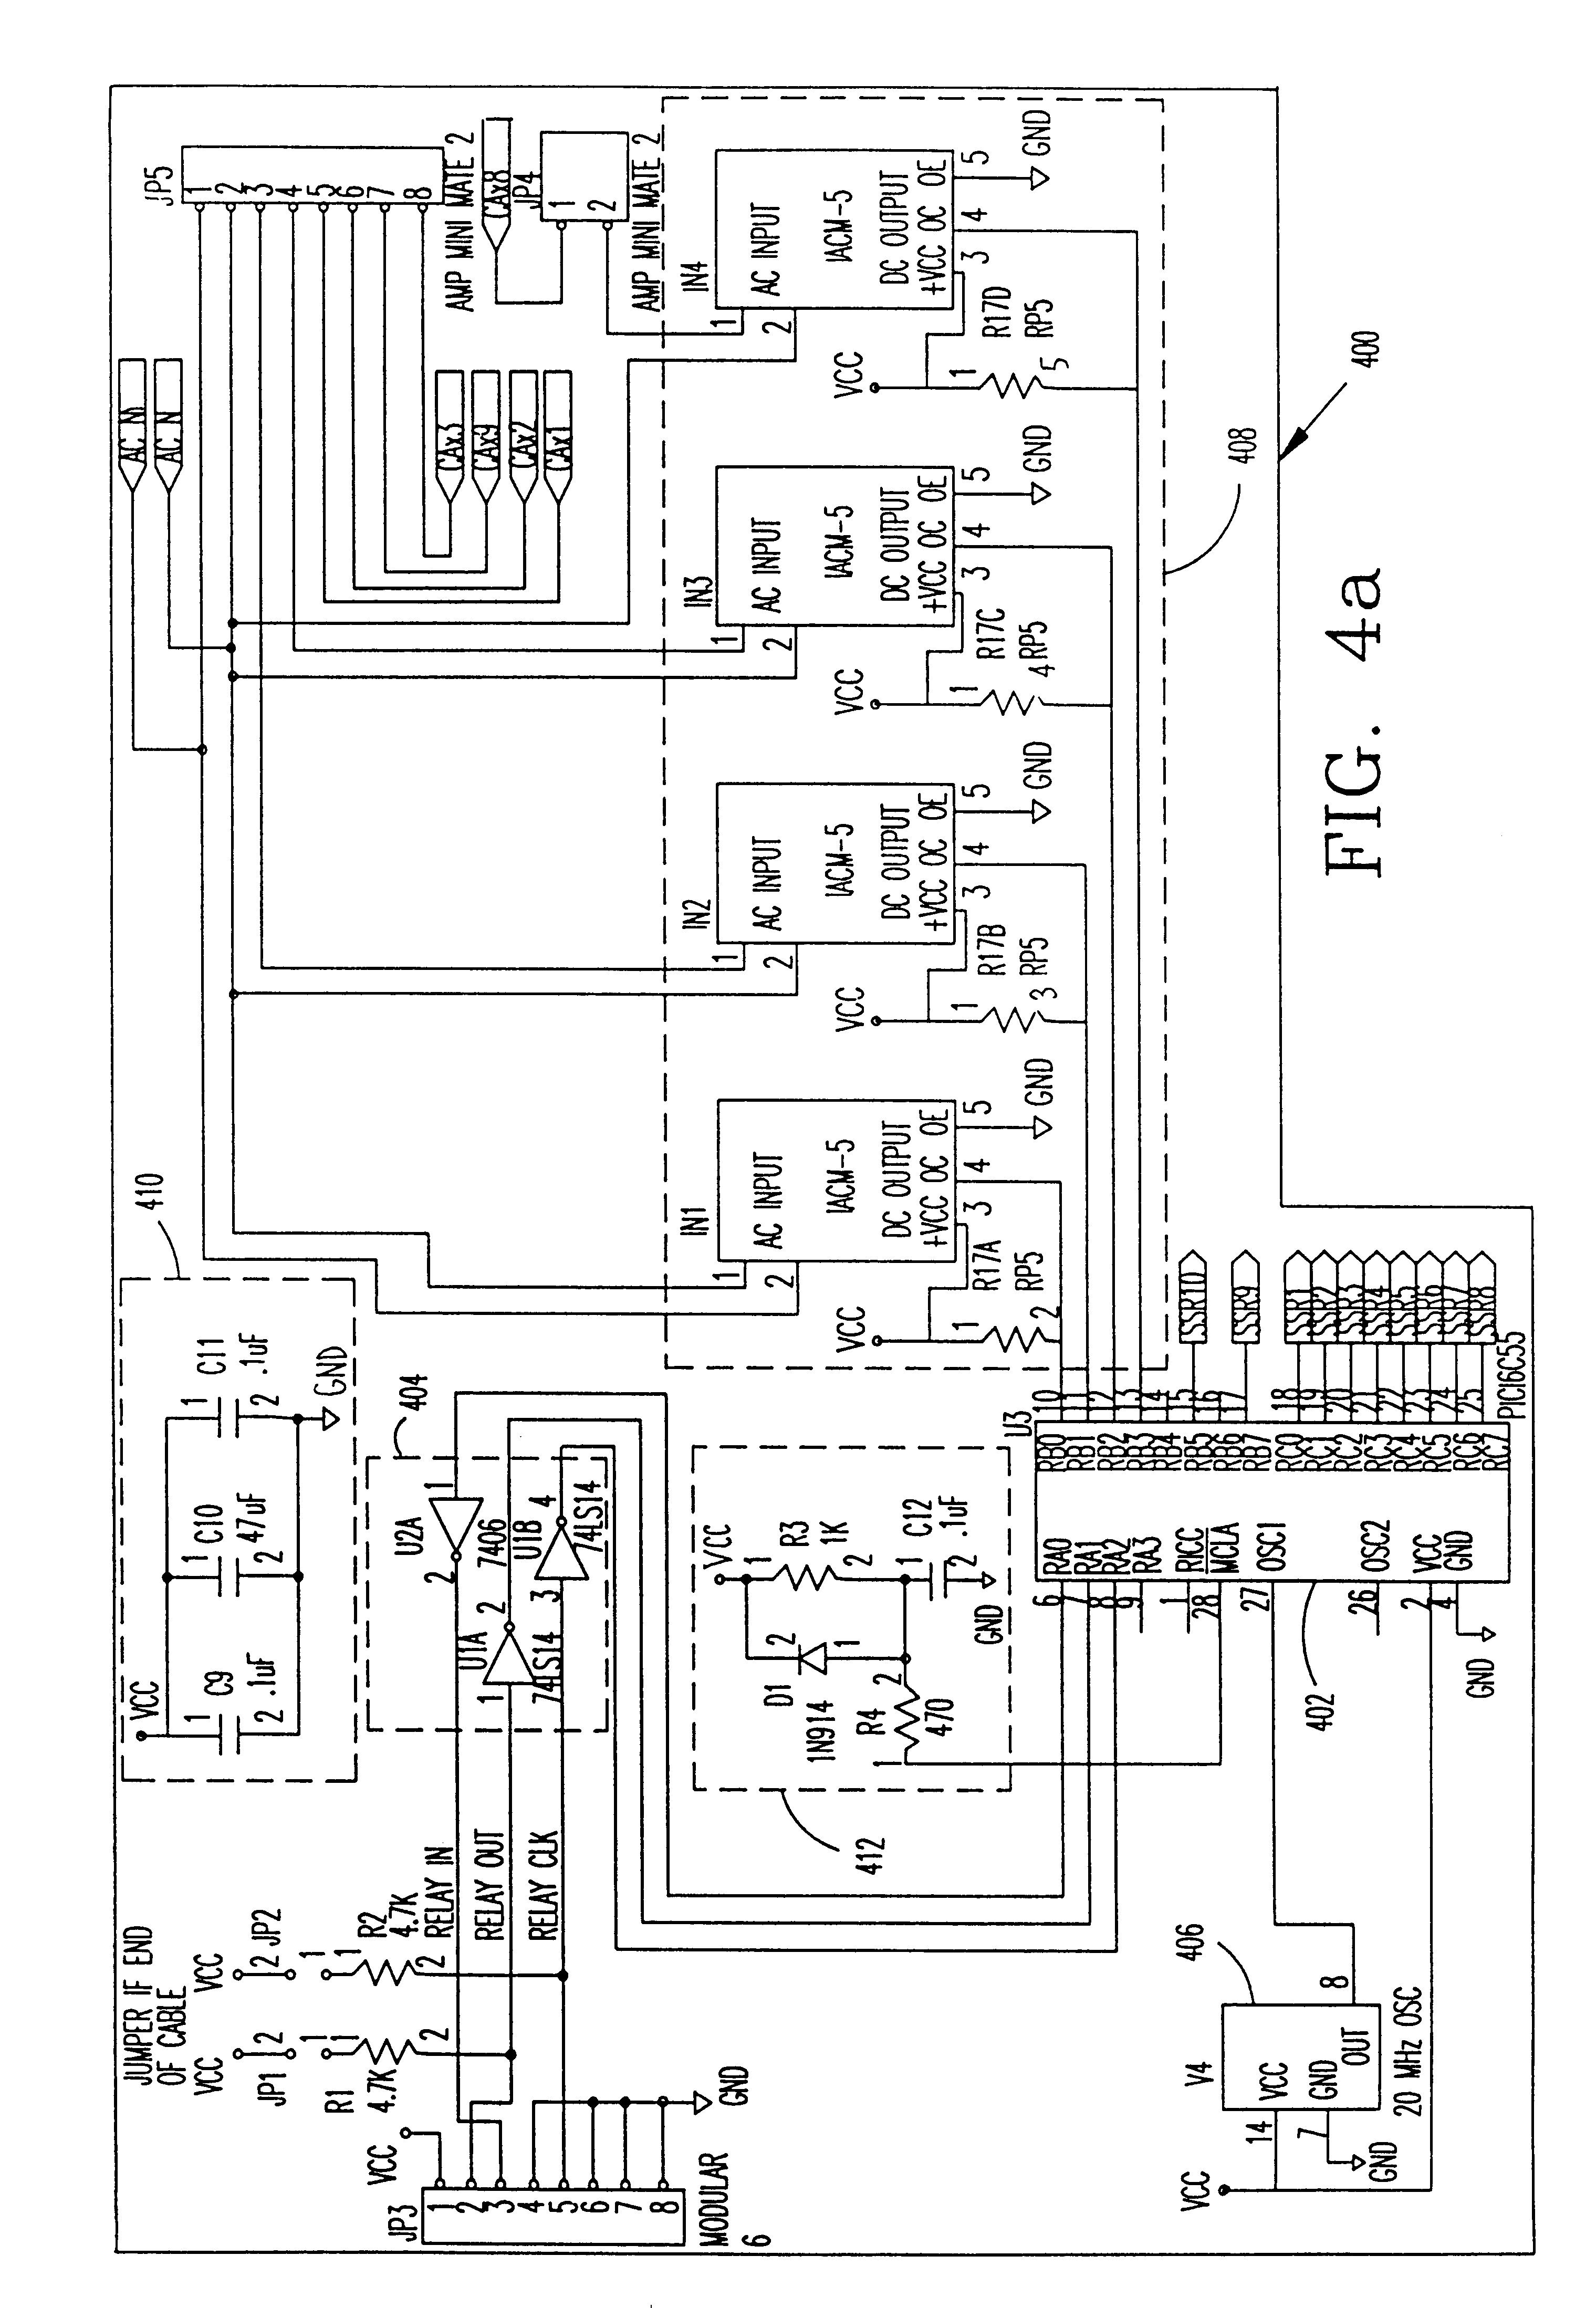 Case 220 Wiring Diagram | Wiring Liry Case Wiring Diagram on case vac wiring-diagram, case ih 1680 wiring-diagram, case 220 hydraulic diagram, case ingersoll 448 garden tractor, case 450 dozer parts fuel tank diagram, case 220 clutch, case 220 decal, case switch diagram, case alternator diagram, case 446 parts list, case backhoe steering schematic, case 646 tractor, case 220 oil capacity, clark forklift brake diagram, case 444 parts list, magnum tractor transmission diagram, case ih hydraulic diagram, case 990 wiring-diagram, case 220 engine,